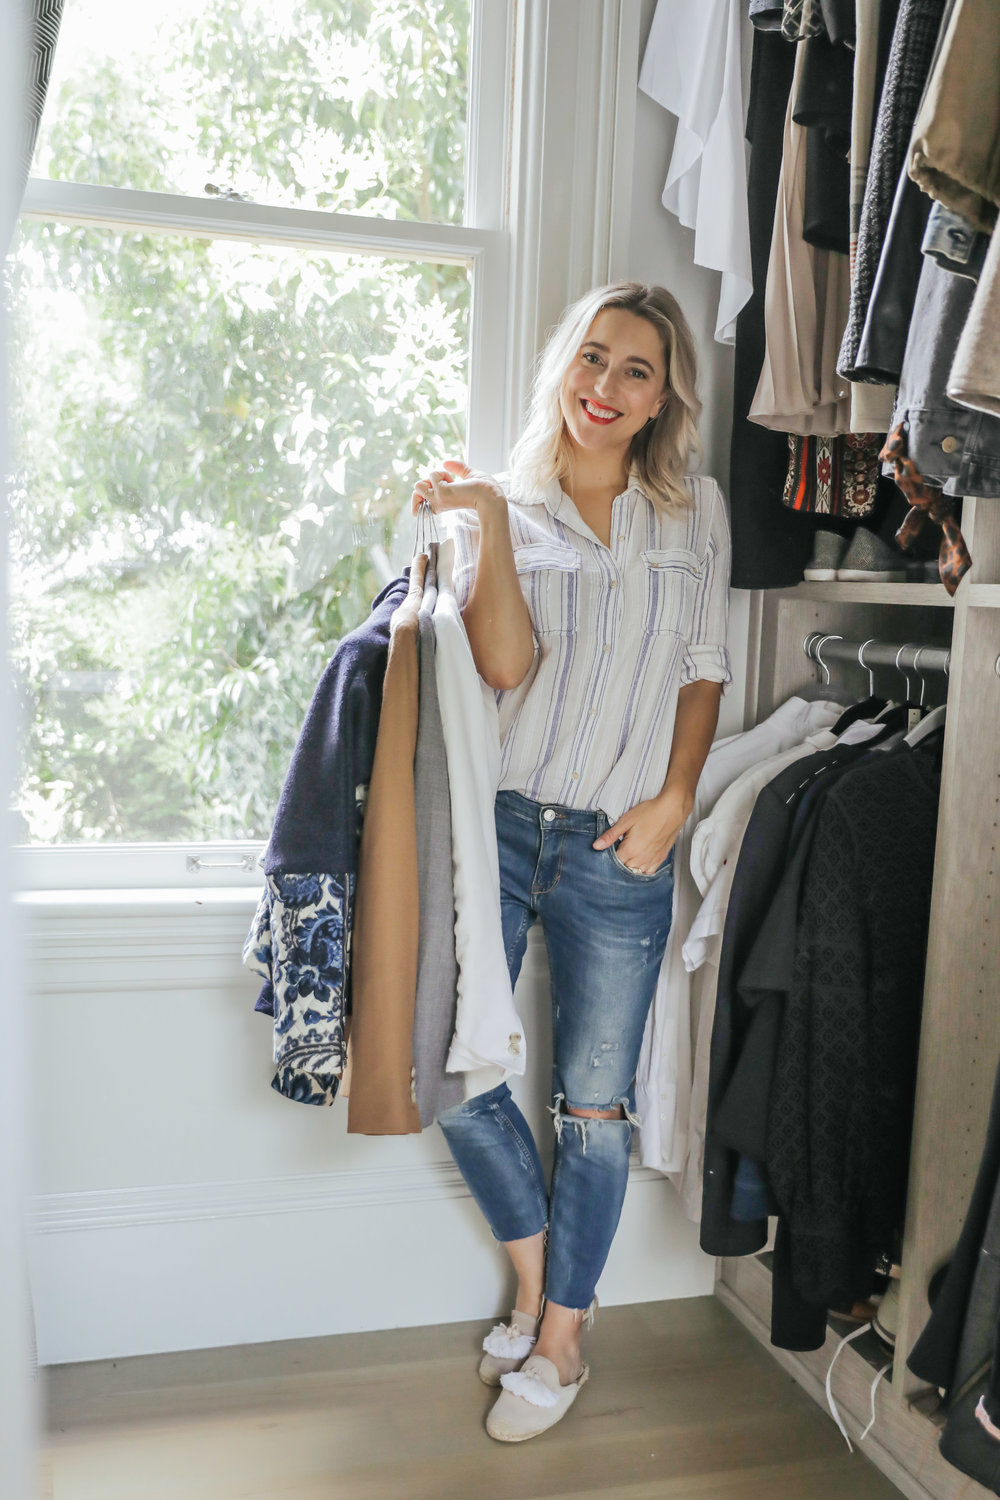 Shopping List - After we purge, your closet might feel a tad bare, but fear not! We will start by identifying the gaps and areas that are lacking and fill them with pieces that will make you feel amazing, represent your style and serve you in the best way possible.